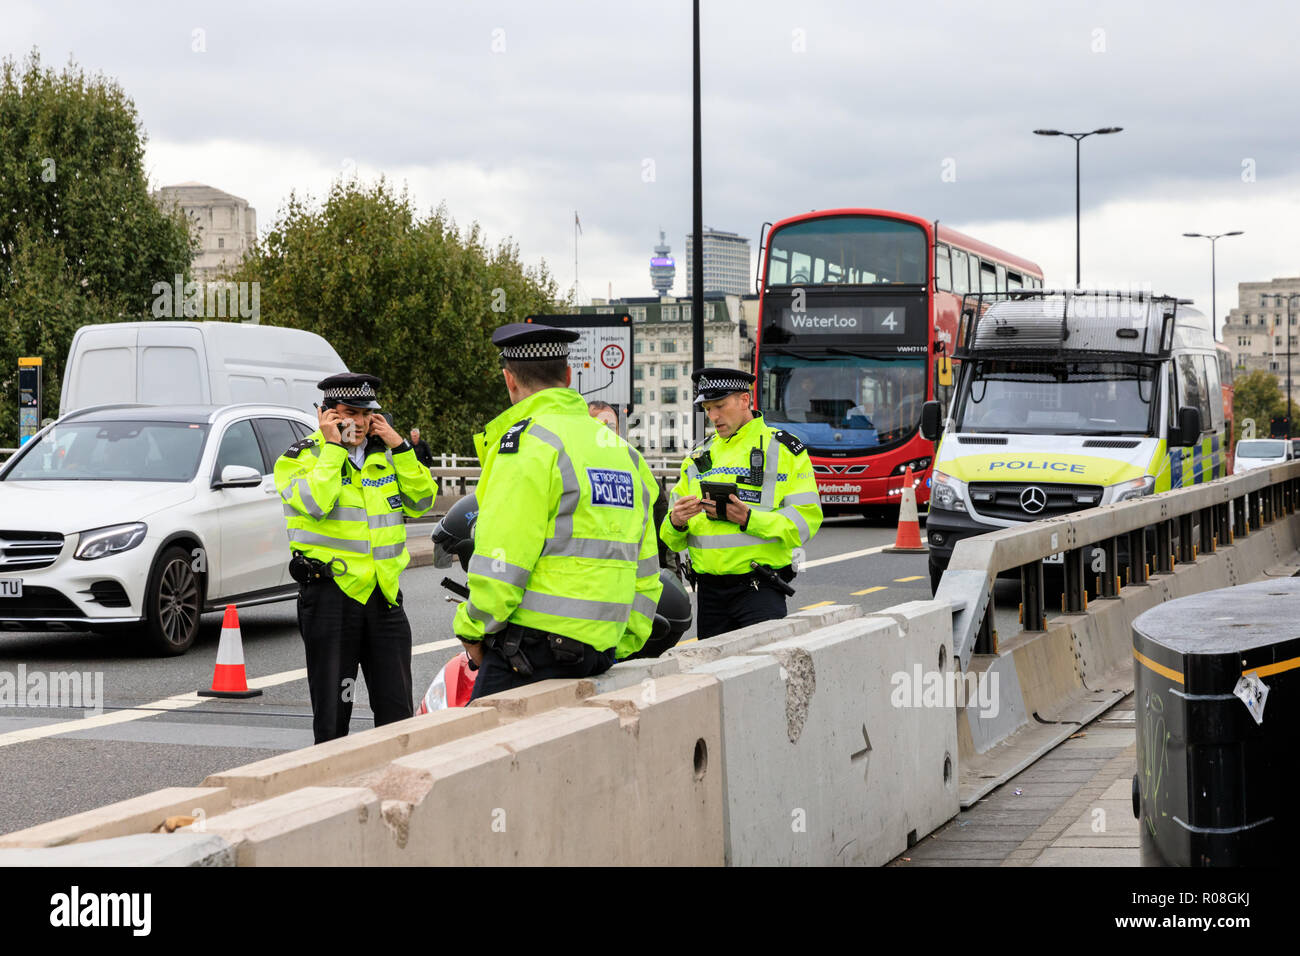 Metropolitain Police officer stop cars and speak to drivers during a stop and search security measure in Waterloo Bridge, London - Stock Image